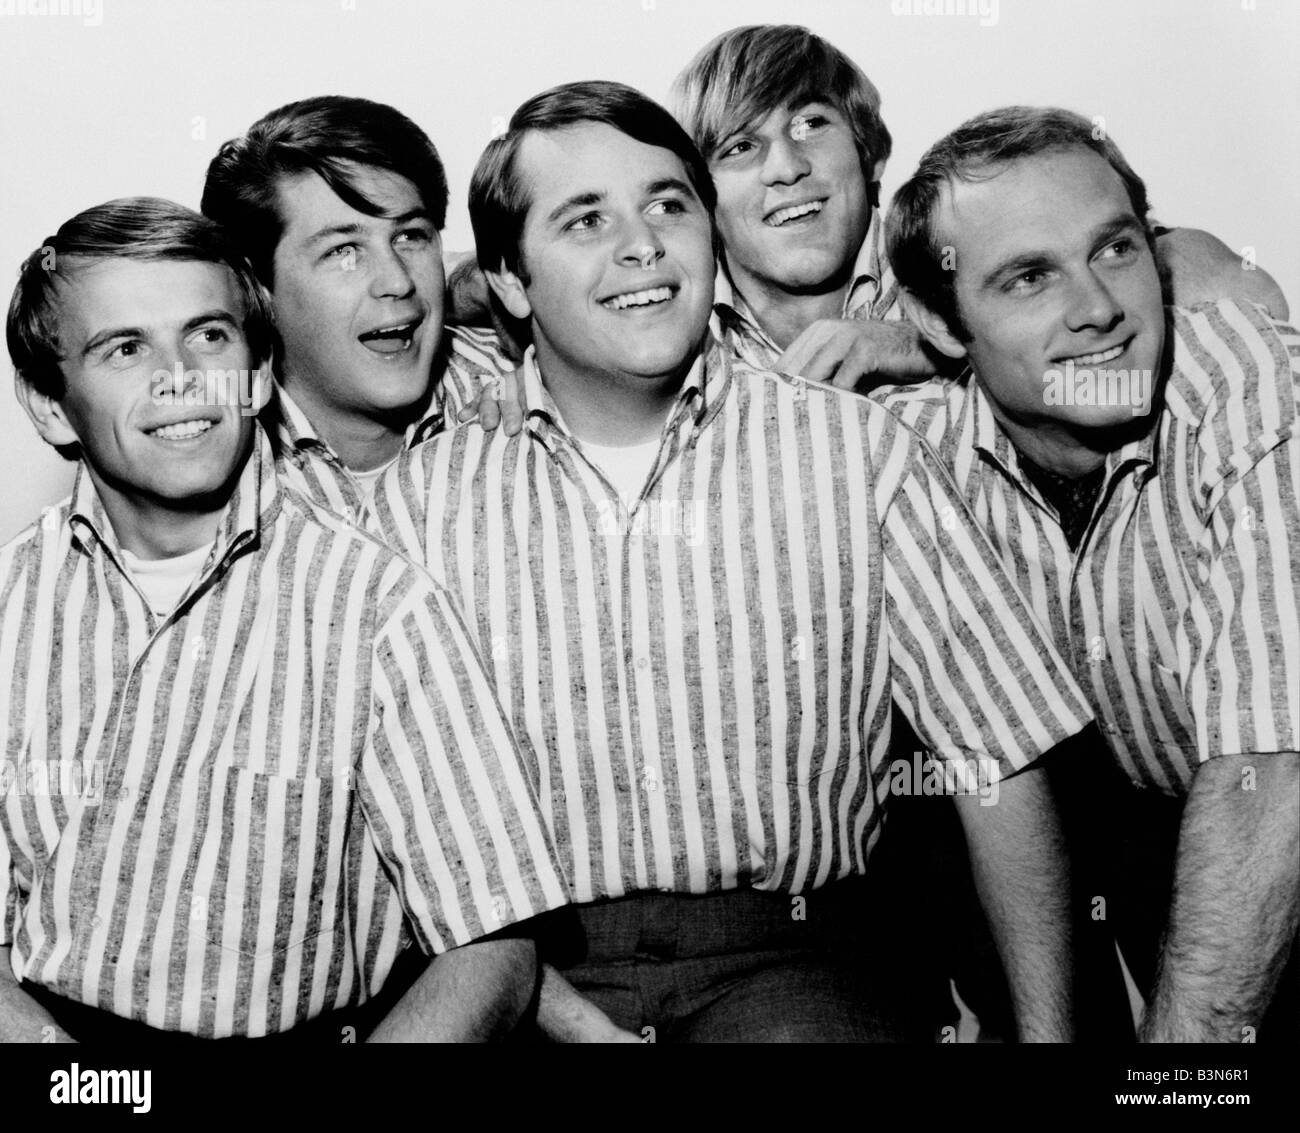 THE BEACH BOYS  US pop group in 1964 from left Al Jardine, Brian Wilson, Carl Wilson, Dennis Wilson and Mike Love - Stock Image